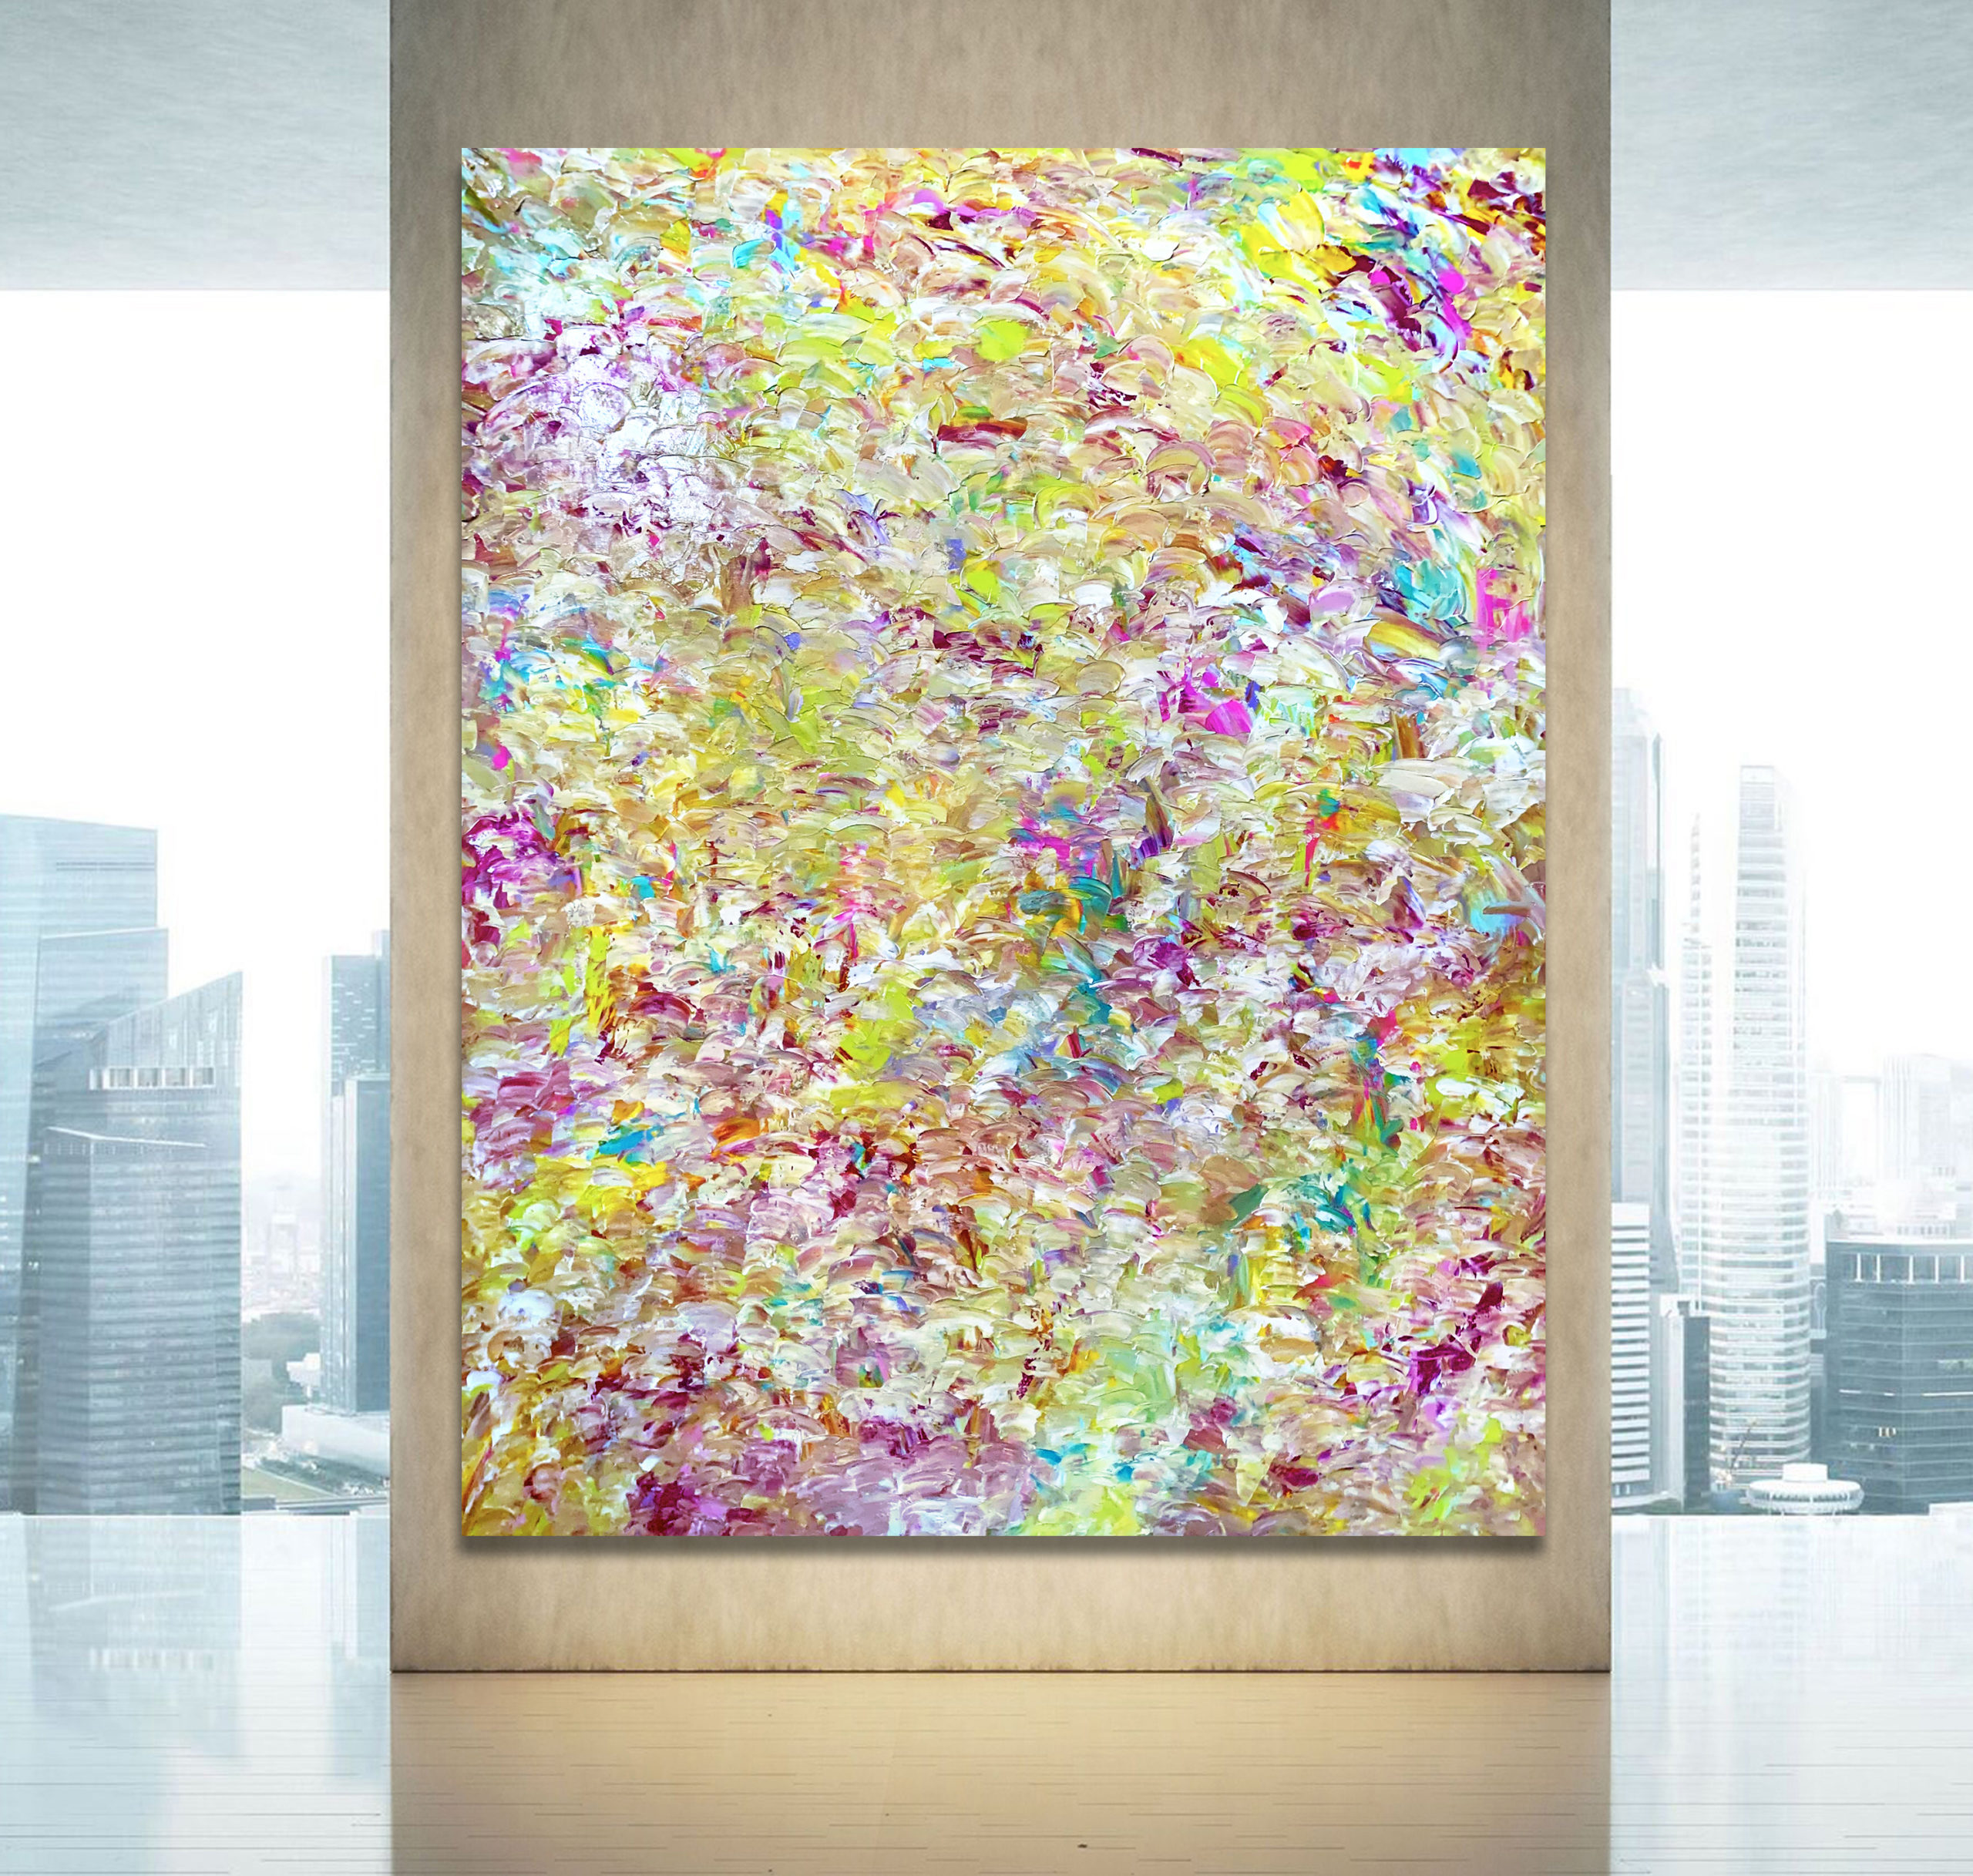 Another Life - Abstract Expressionism by Estelle Asmodelle